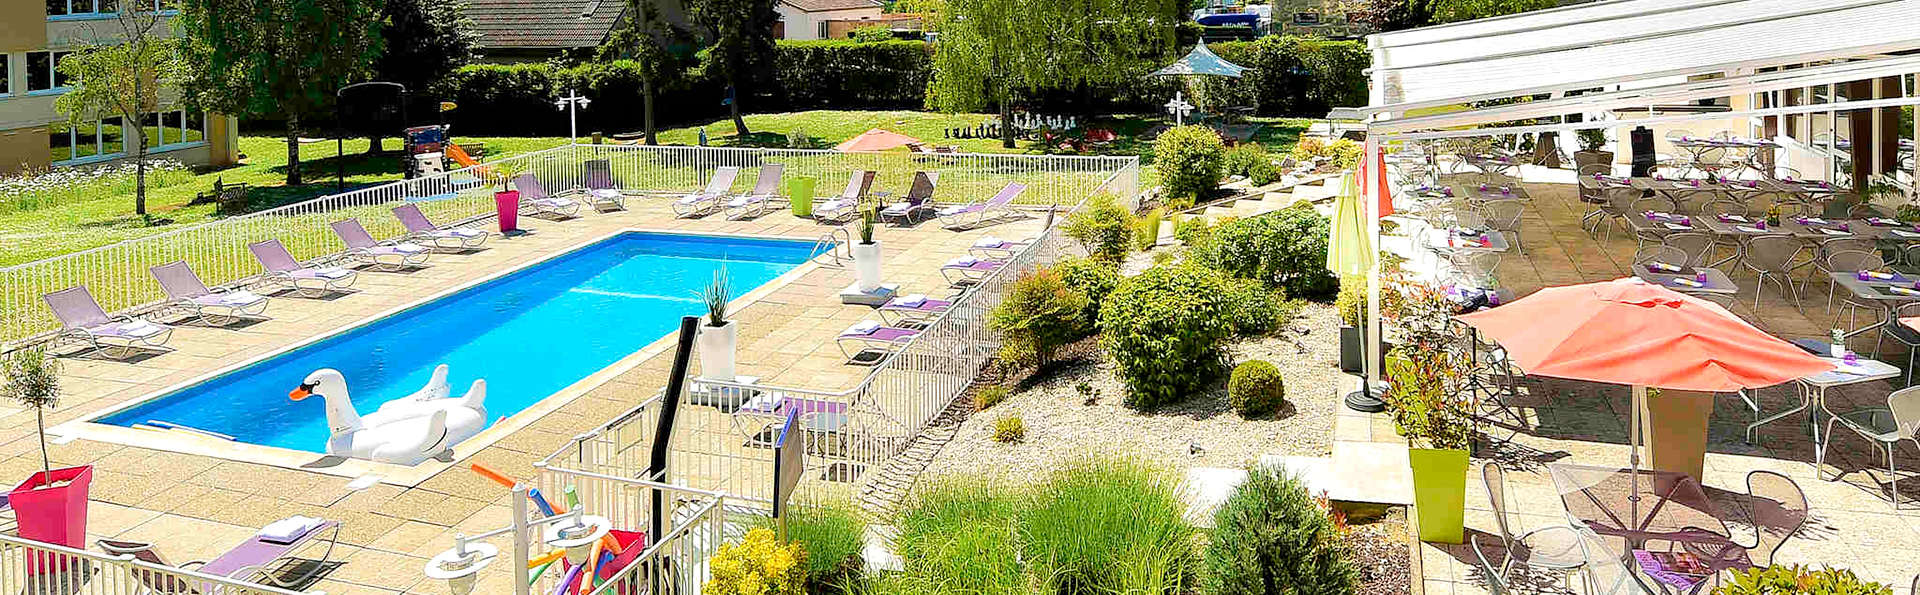 NOVOTEL DIJON ROUTE DES GRAND CRUS  - Edit_Pool2.jpg